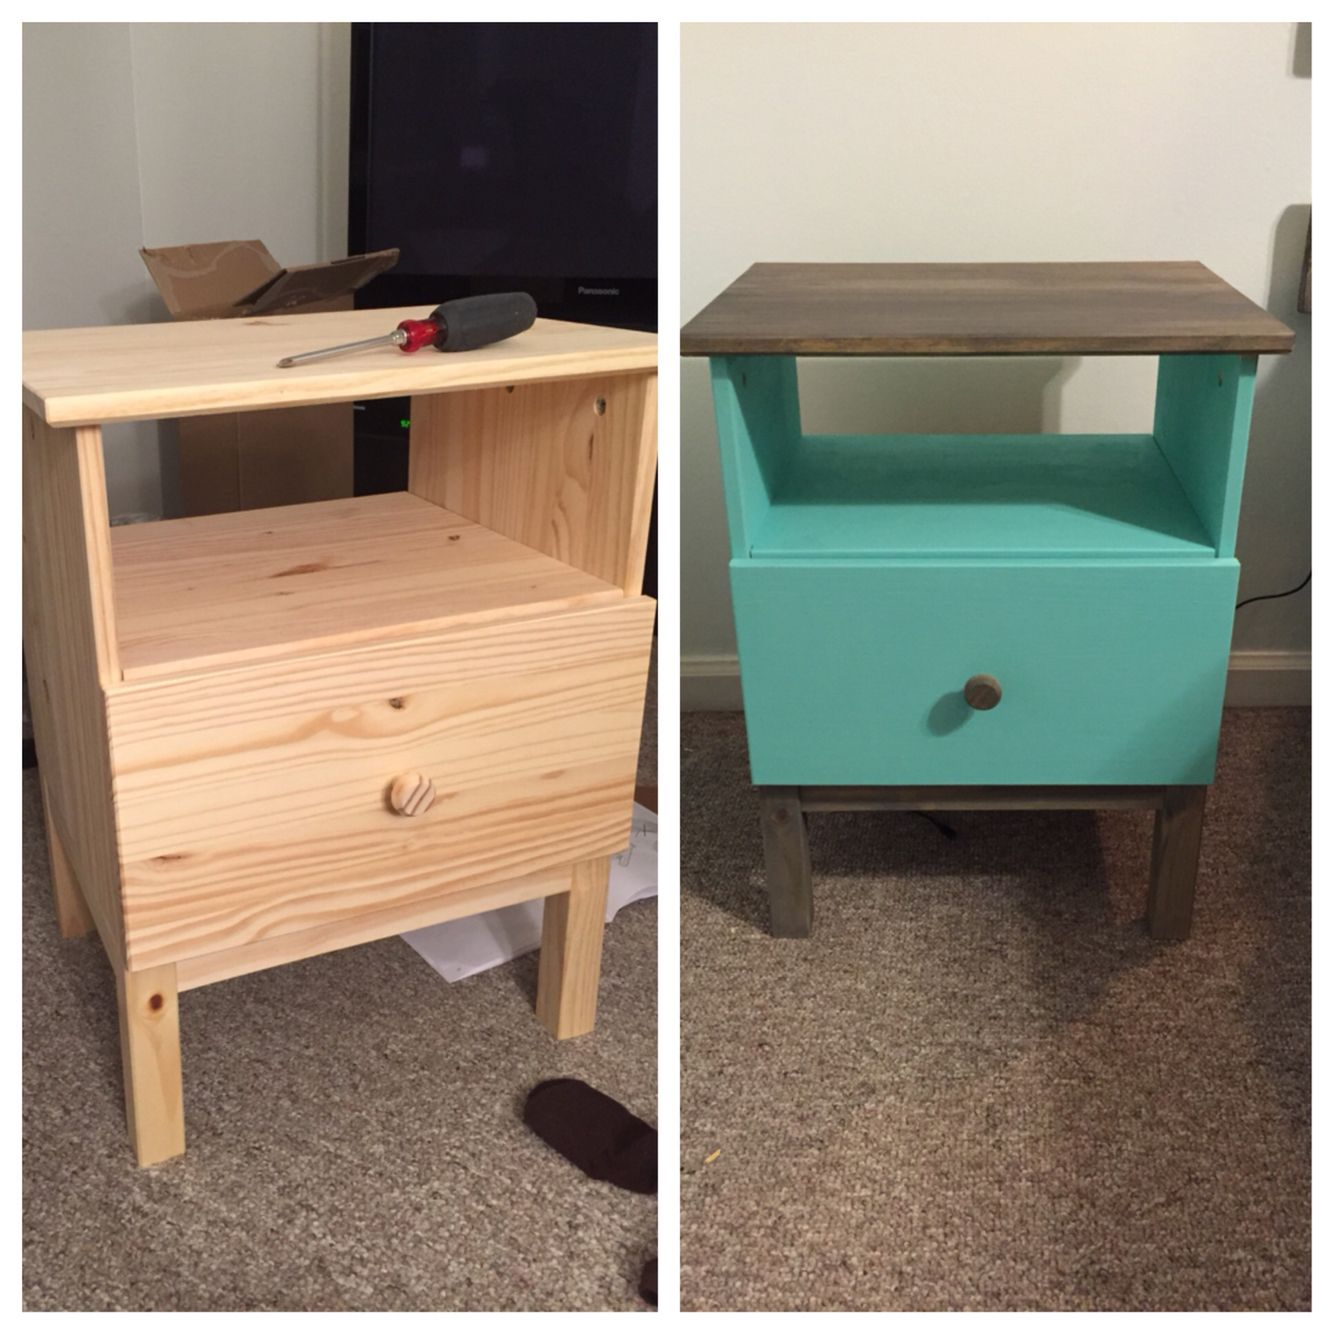 this is the ikea tarva nightstand shown with paint and a stained top